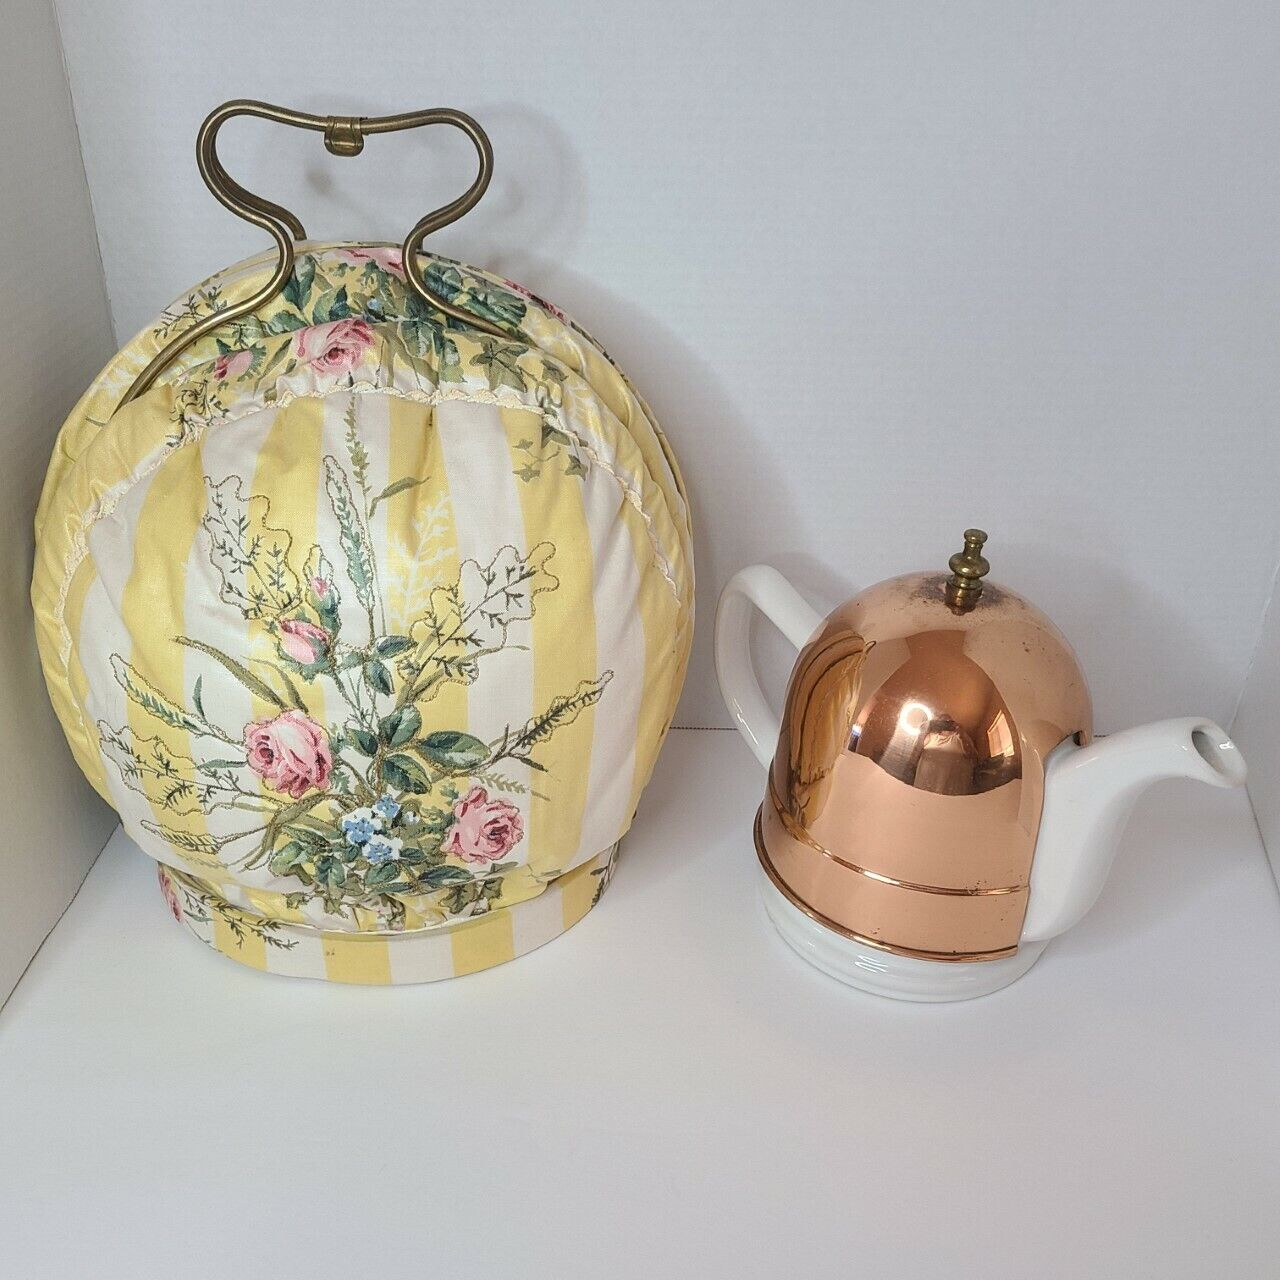 Vintage Porcelain Tea Pot With Copper Cozy Warmer and Insula